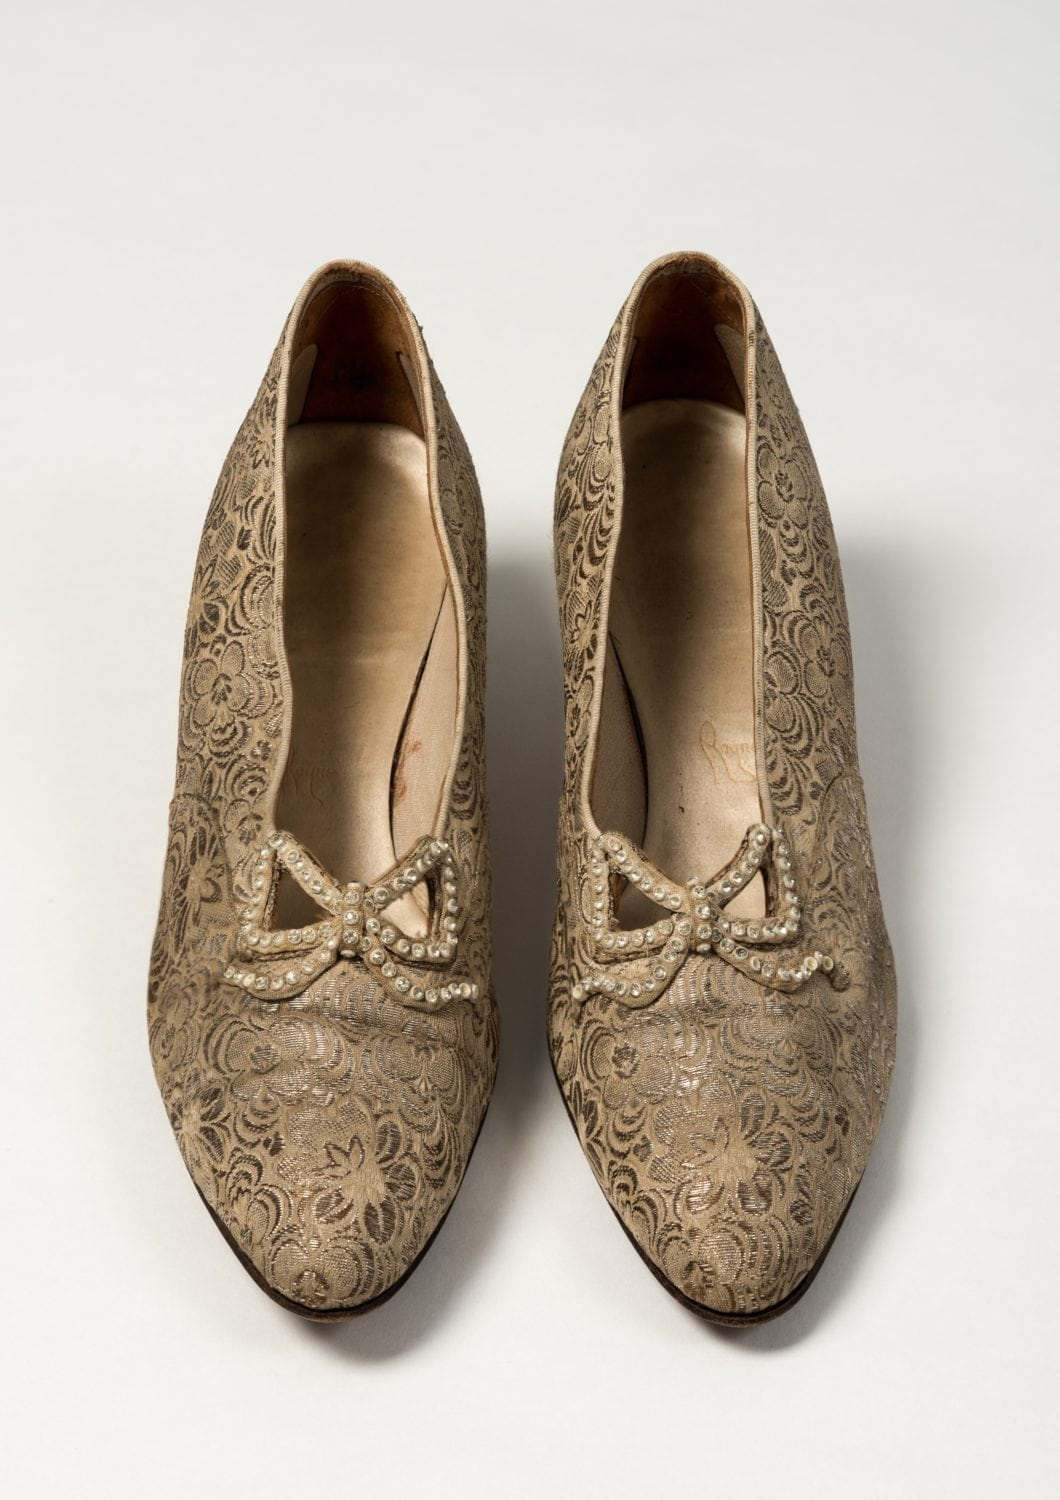 Hand embroided shoes apart of the royal school of needlework collection